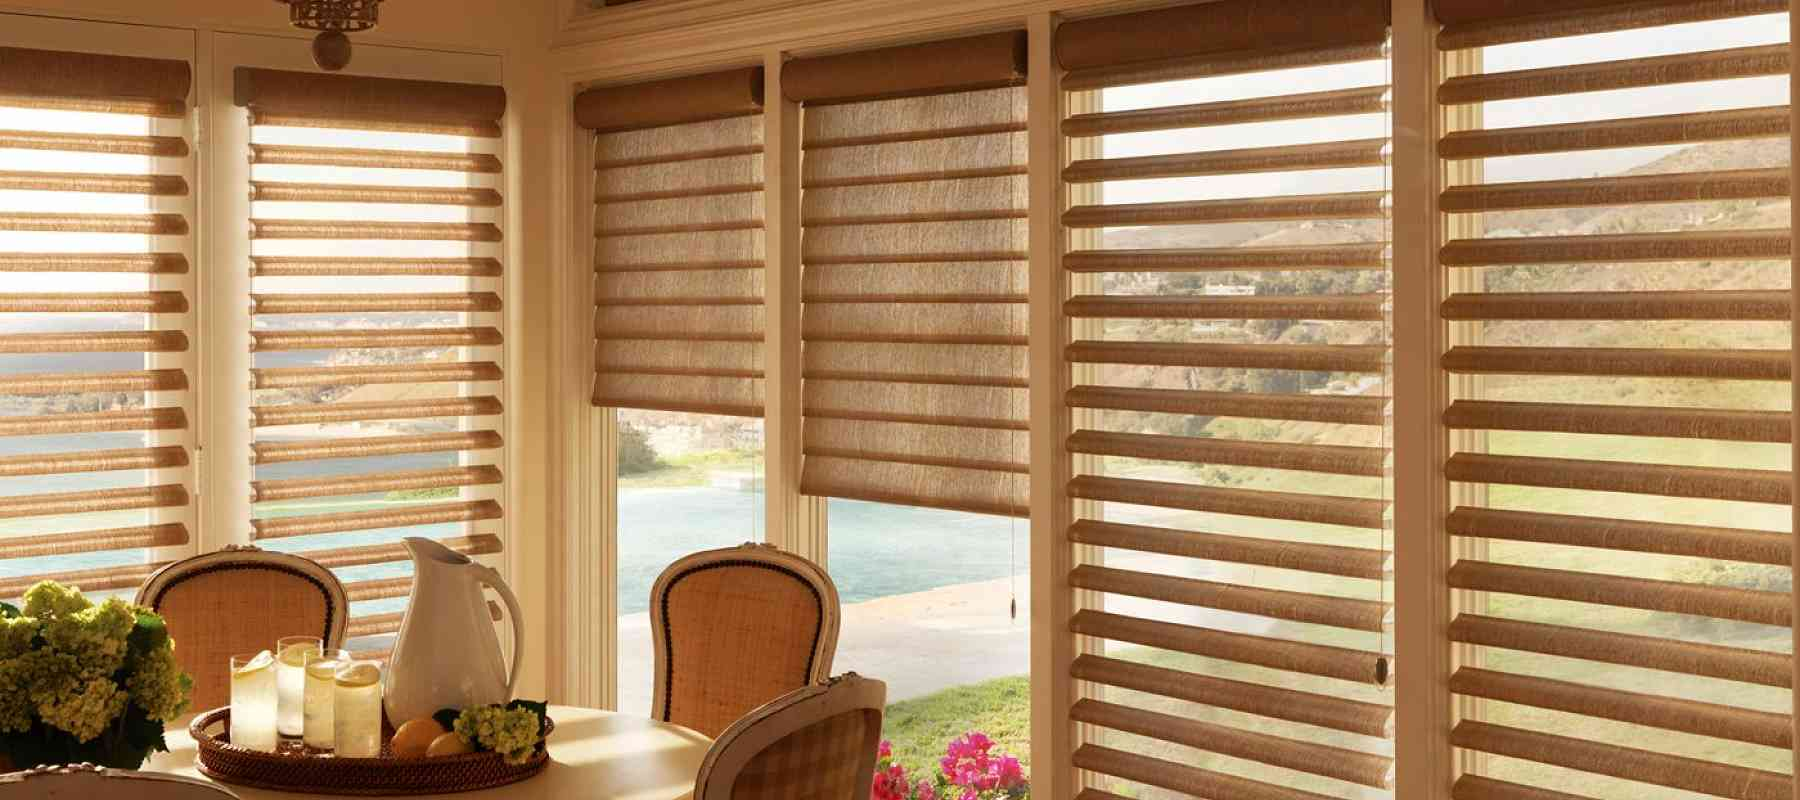 Window Treatments: A Few Key Things to Remember